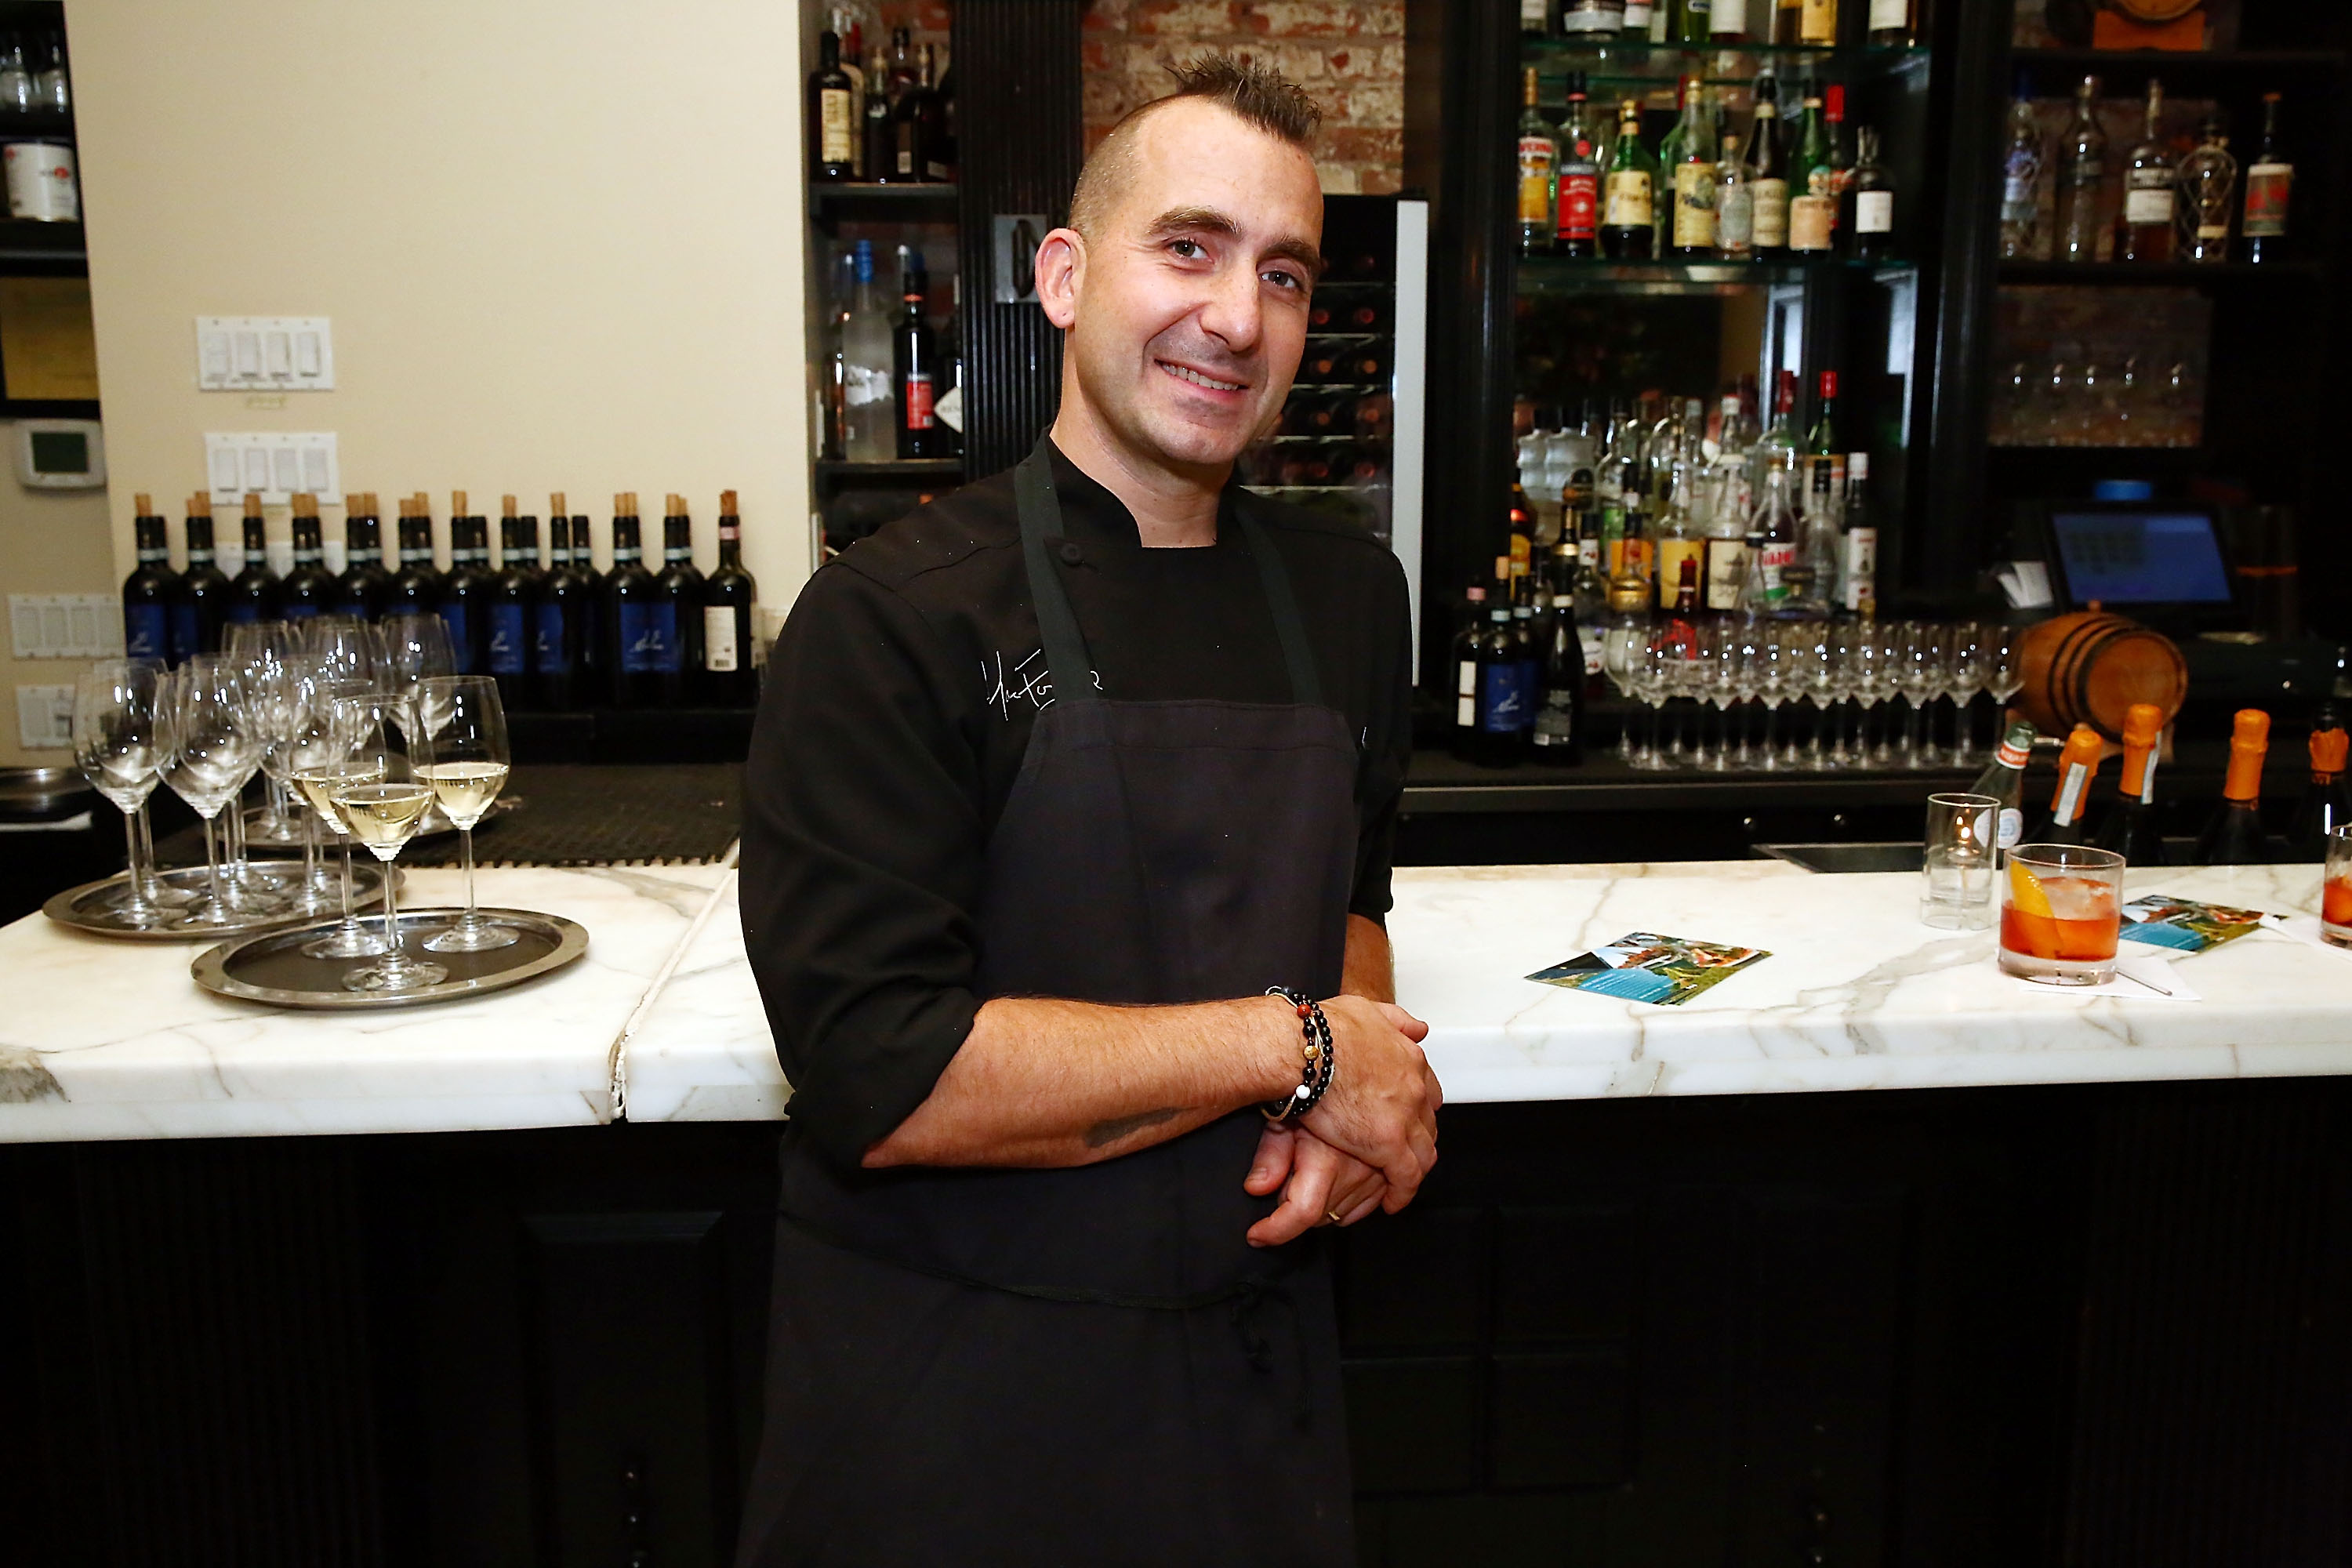 Marc Forgione and His Legendary Father to Open Big Meatpacking District Restaurant